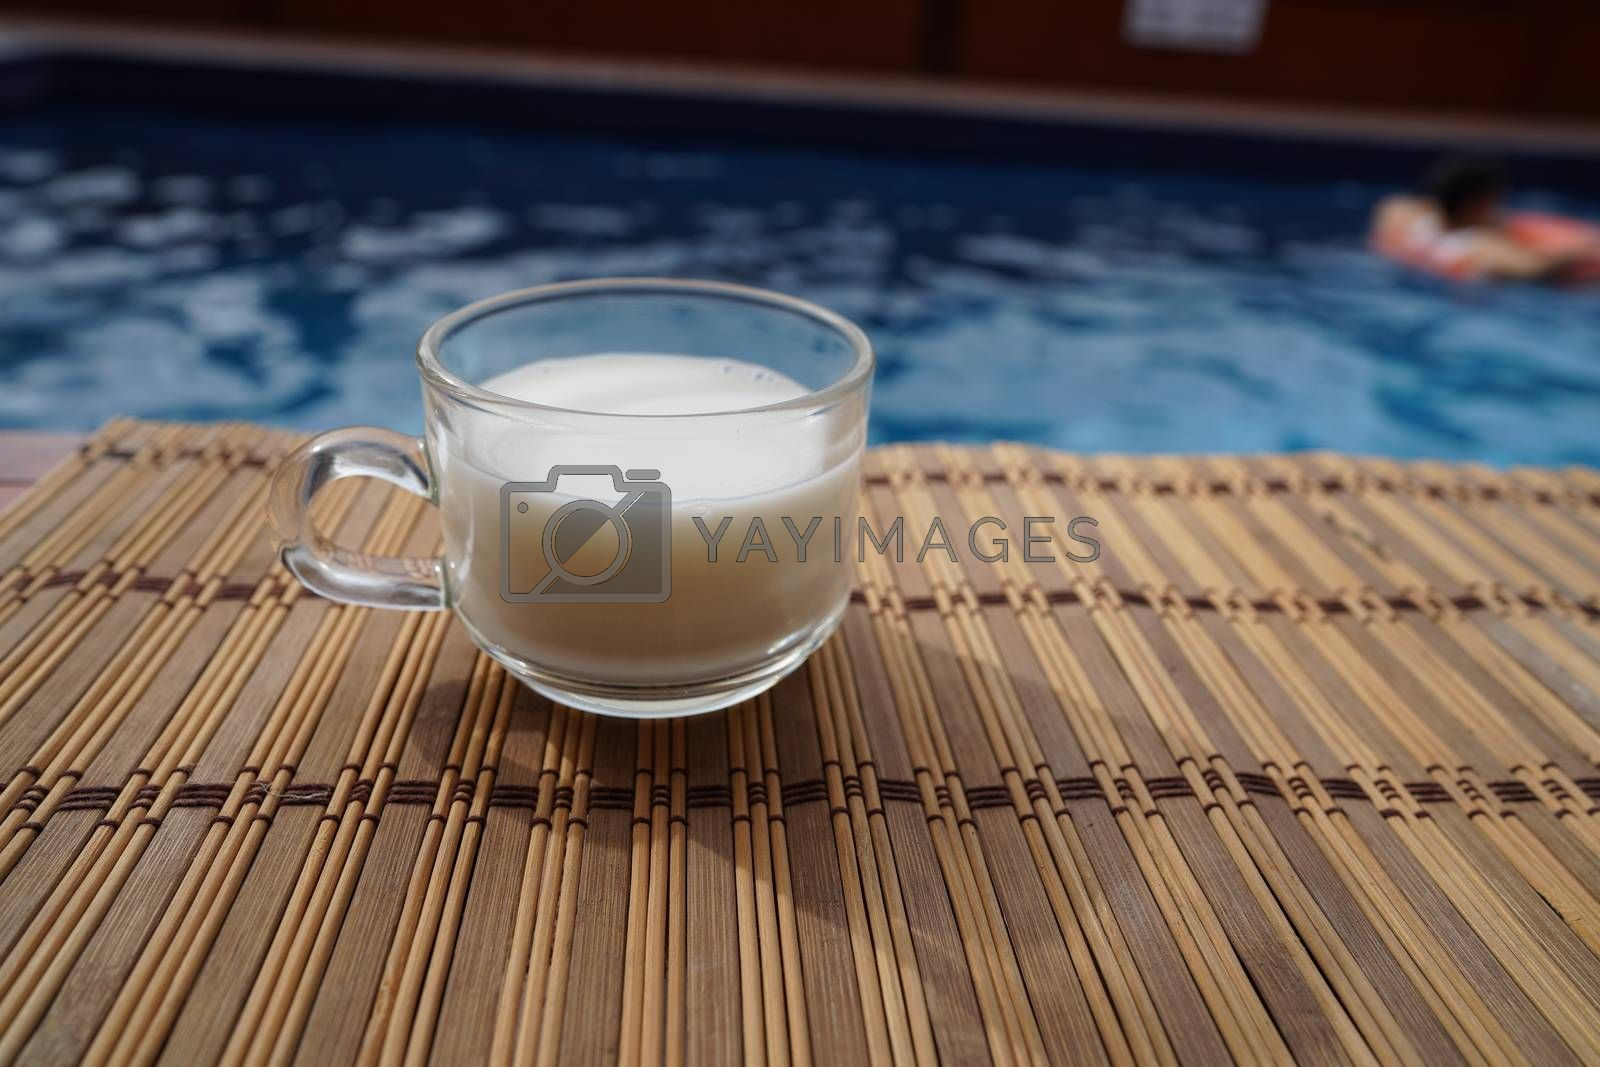 A cup of hot latte coffee is beside the pool in the house.